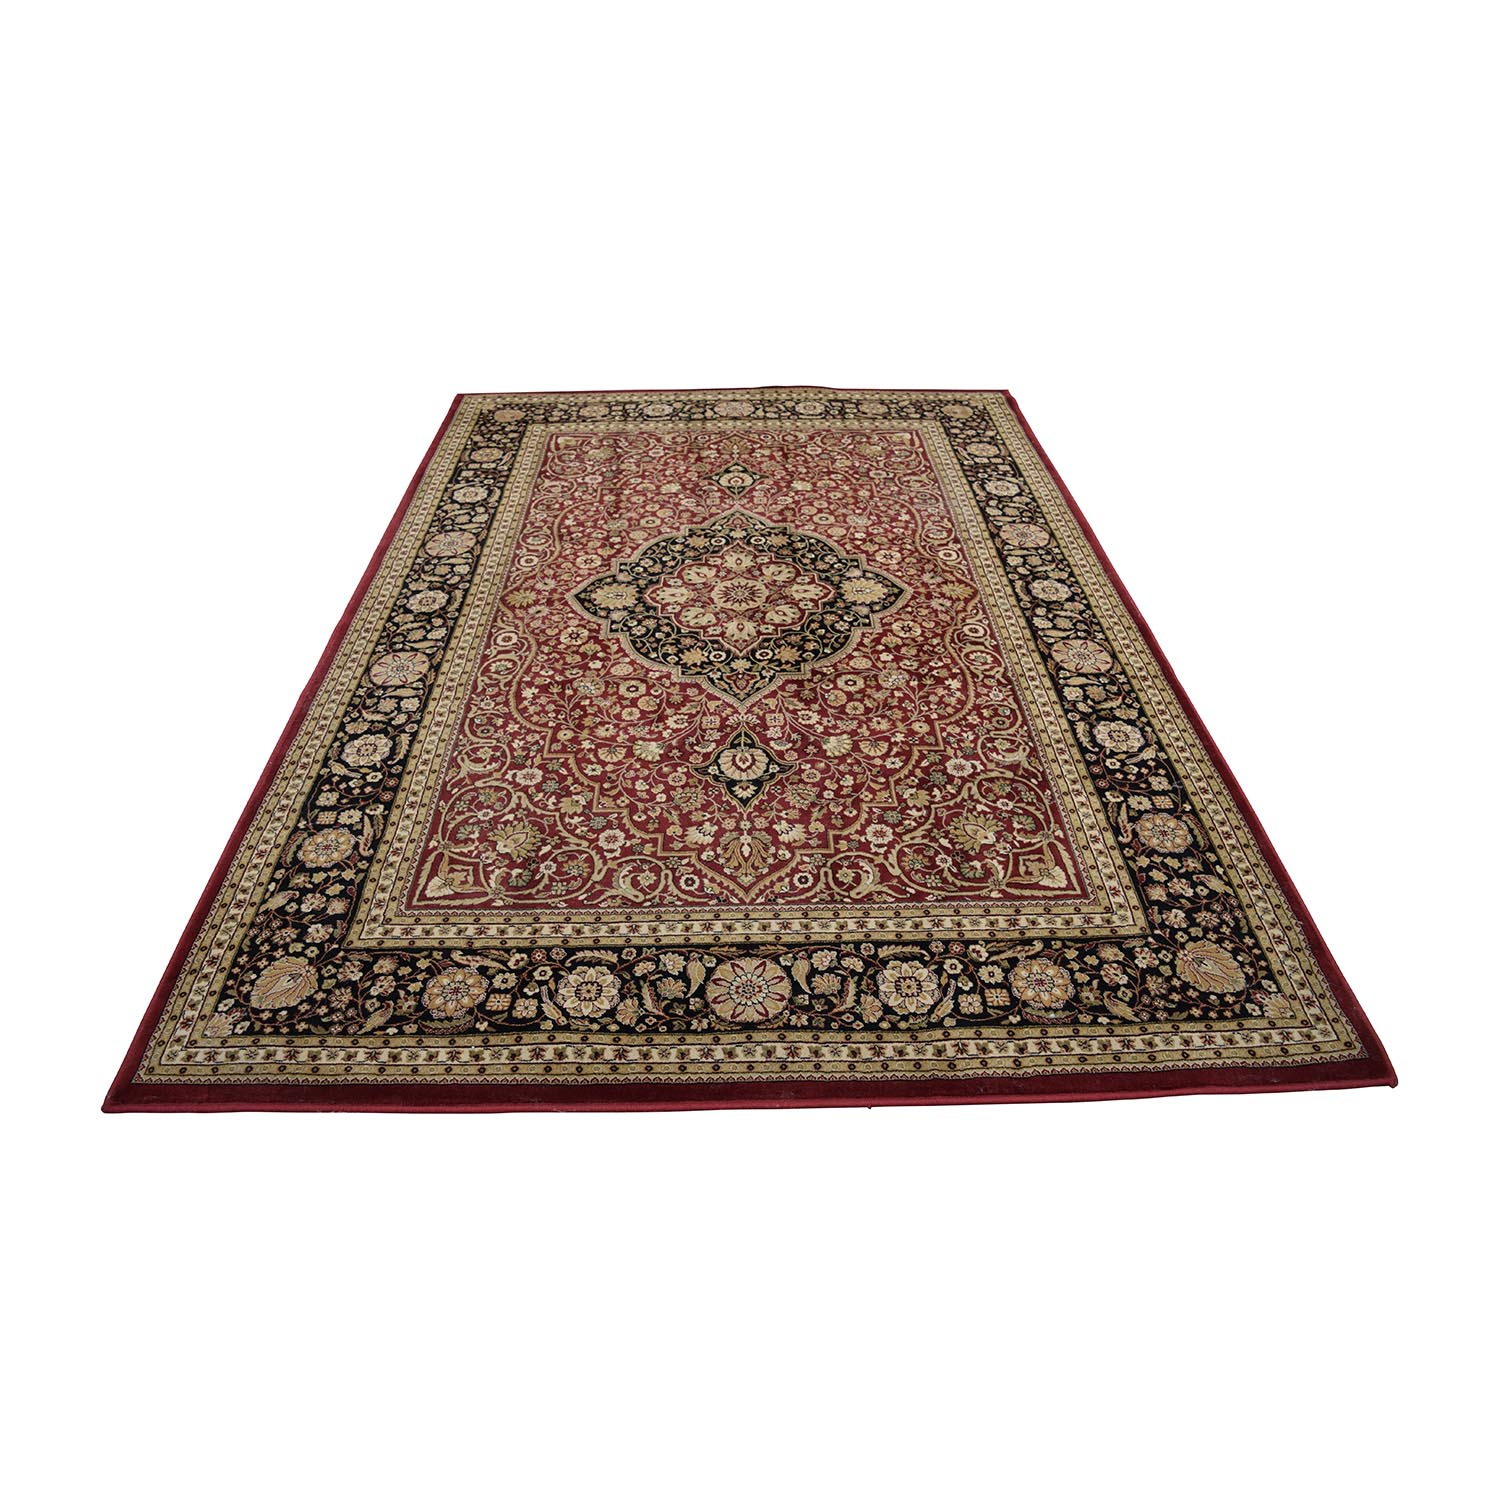 Oriental Red Black and Beige Rug discount